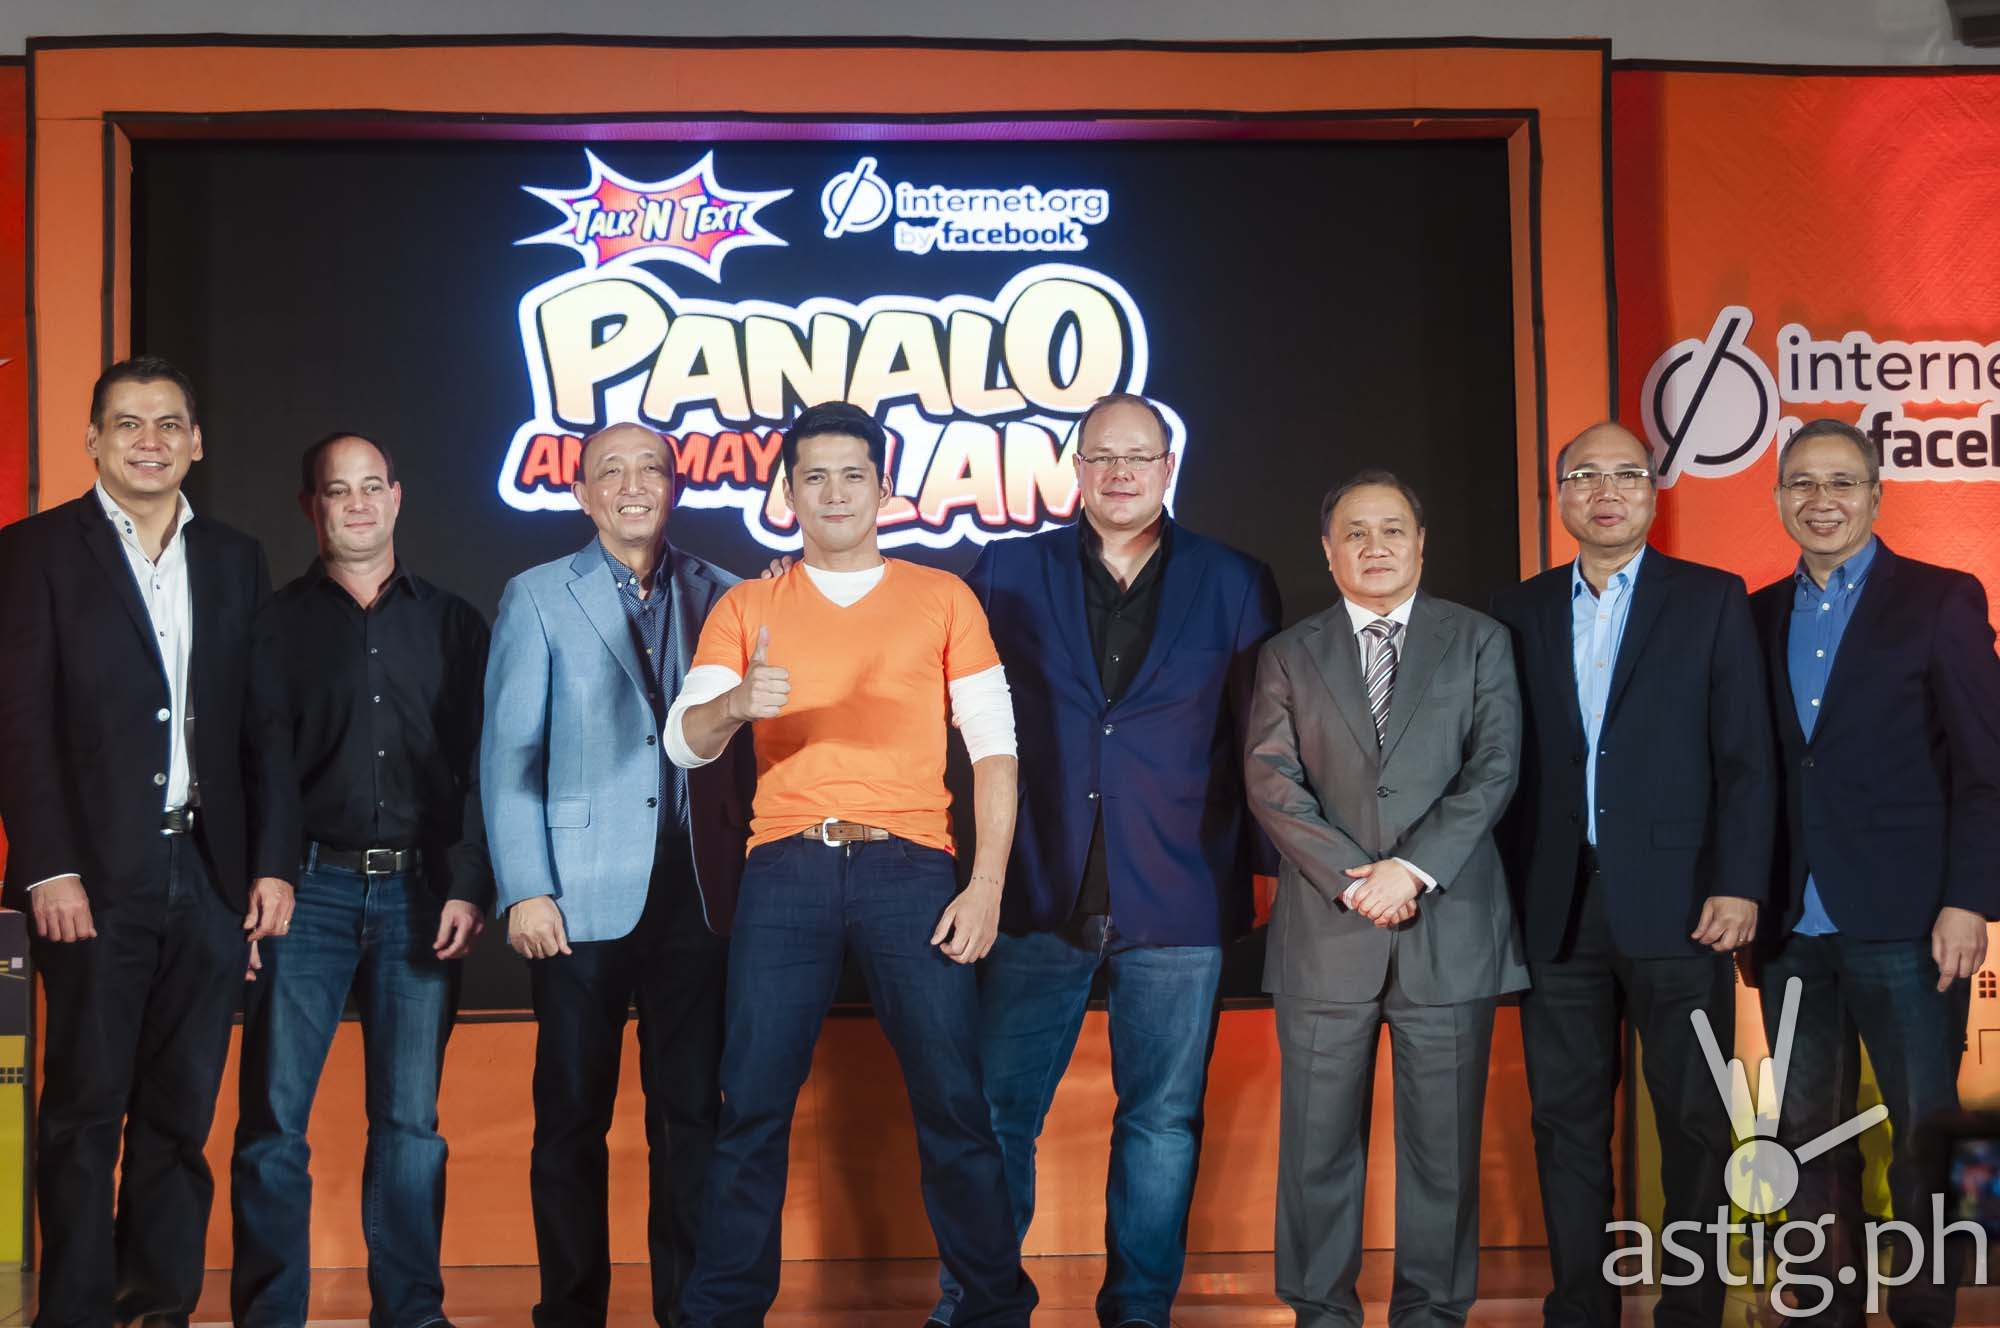 Facebook, Smart Communications, and Talk 'N Text executives pose with Robin Padilla at the launch of Internet.org in Taguig City